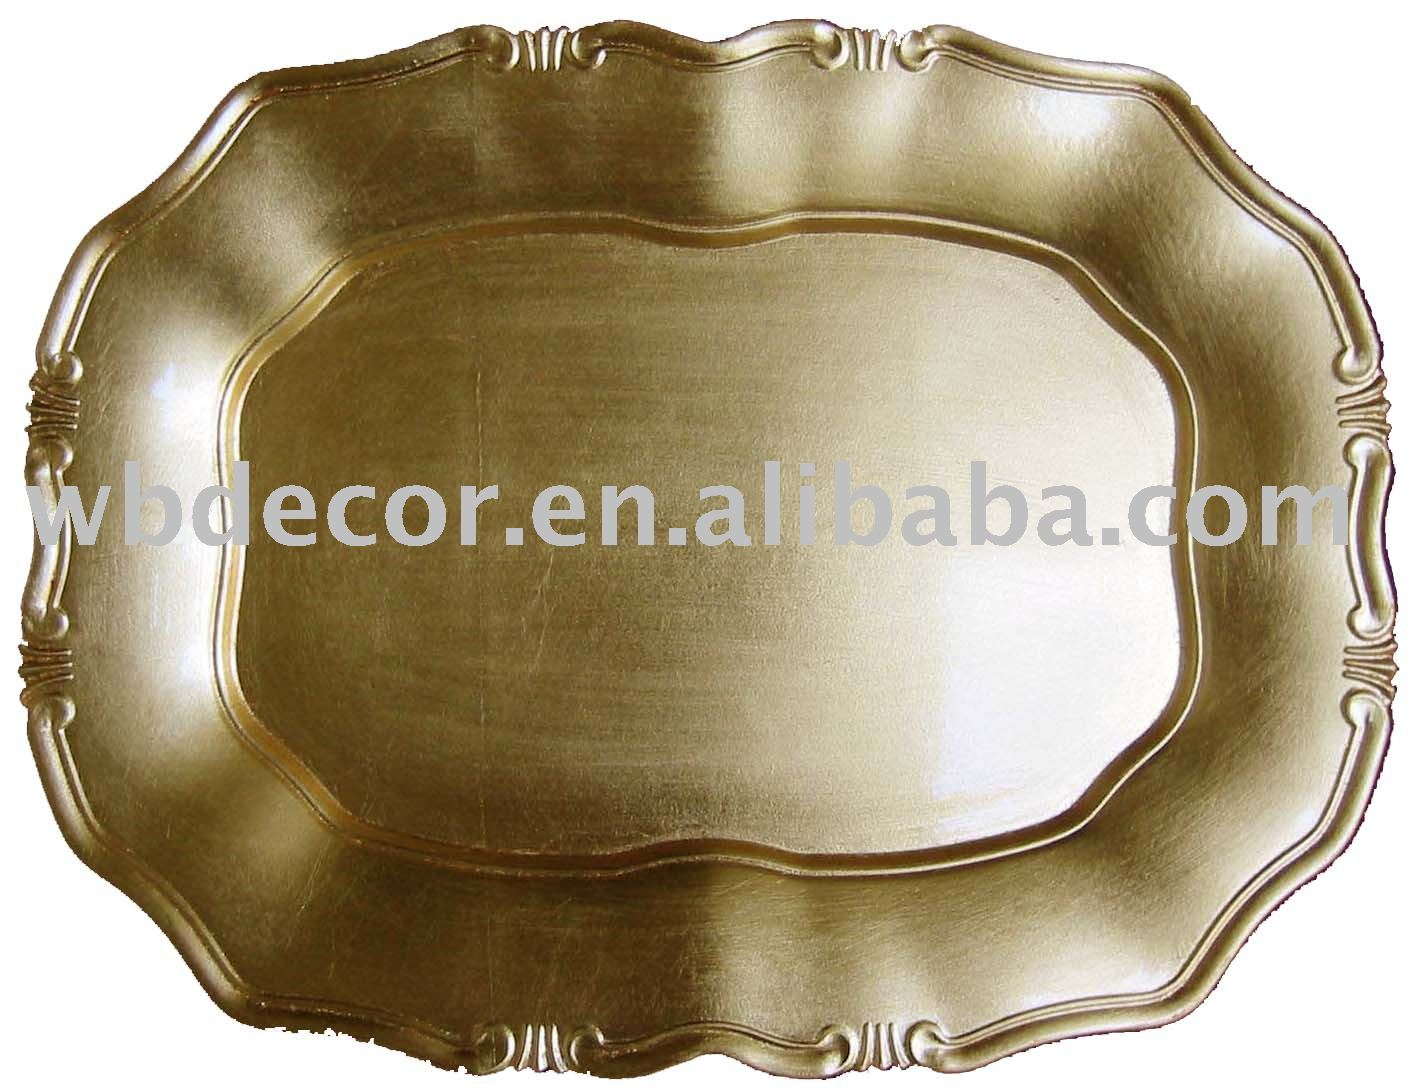 Plastic lacquer tray in high quality